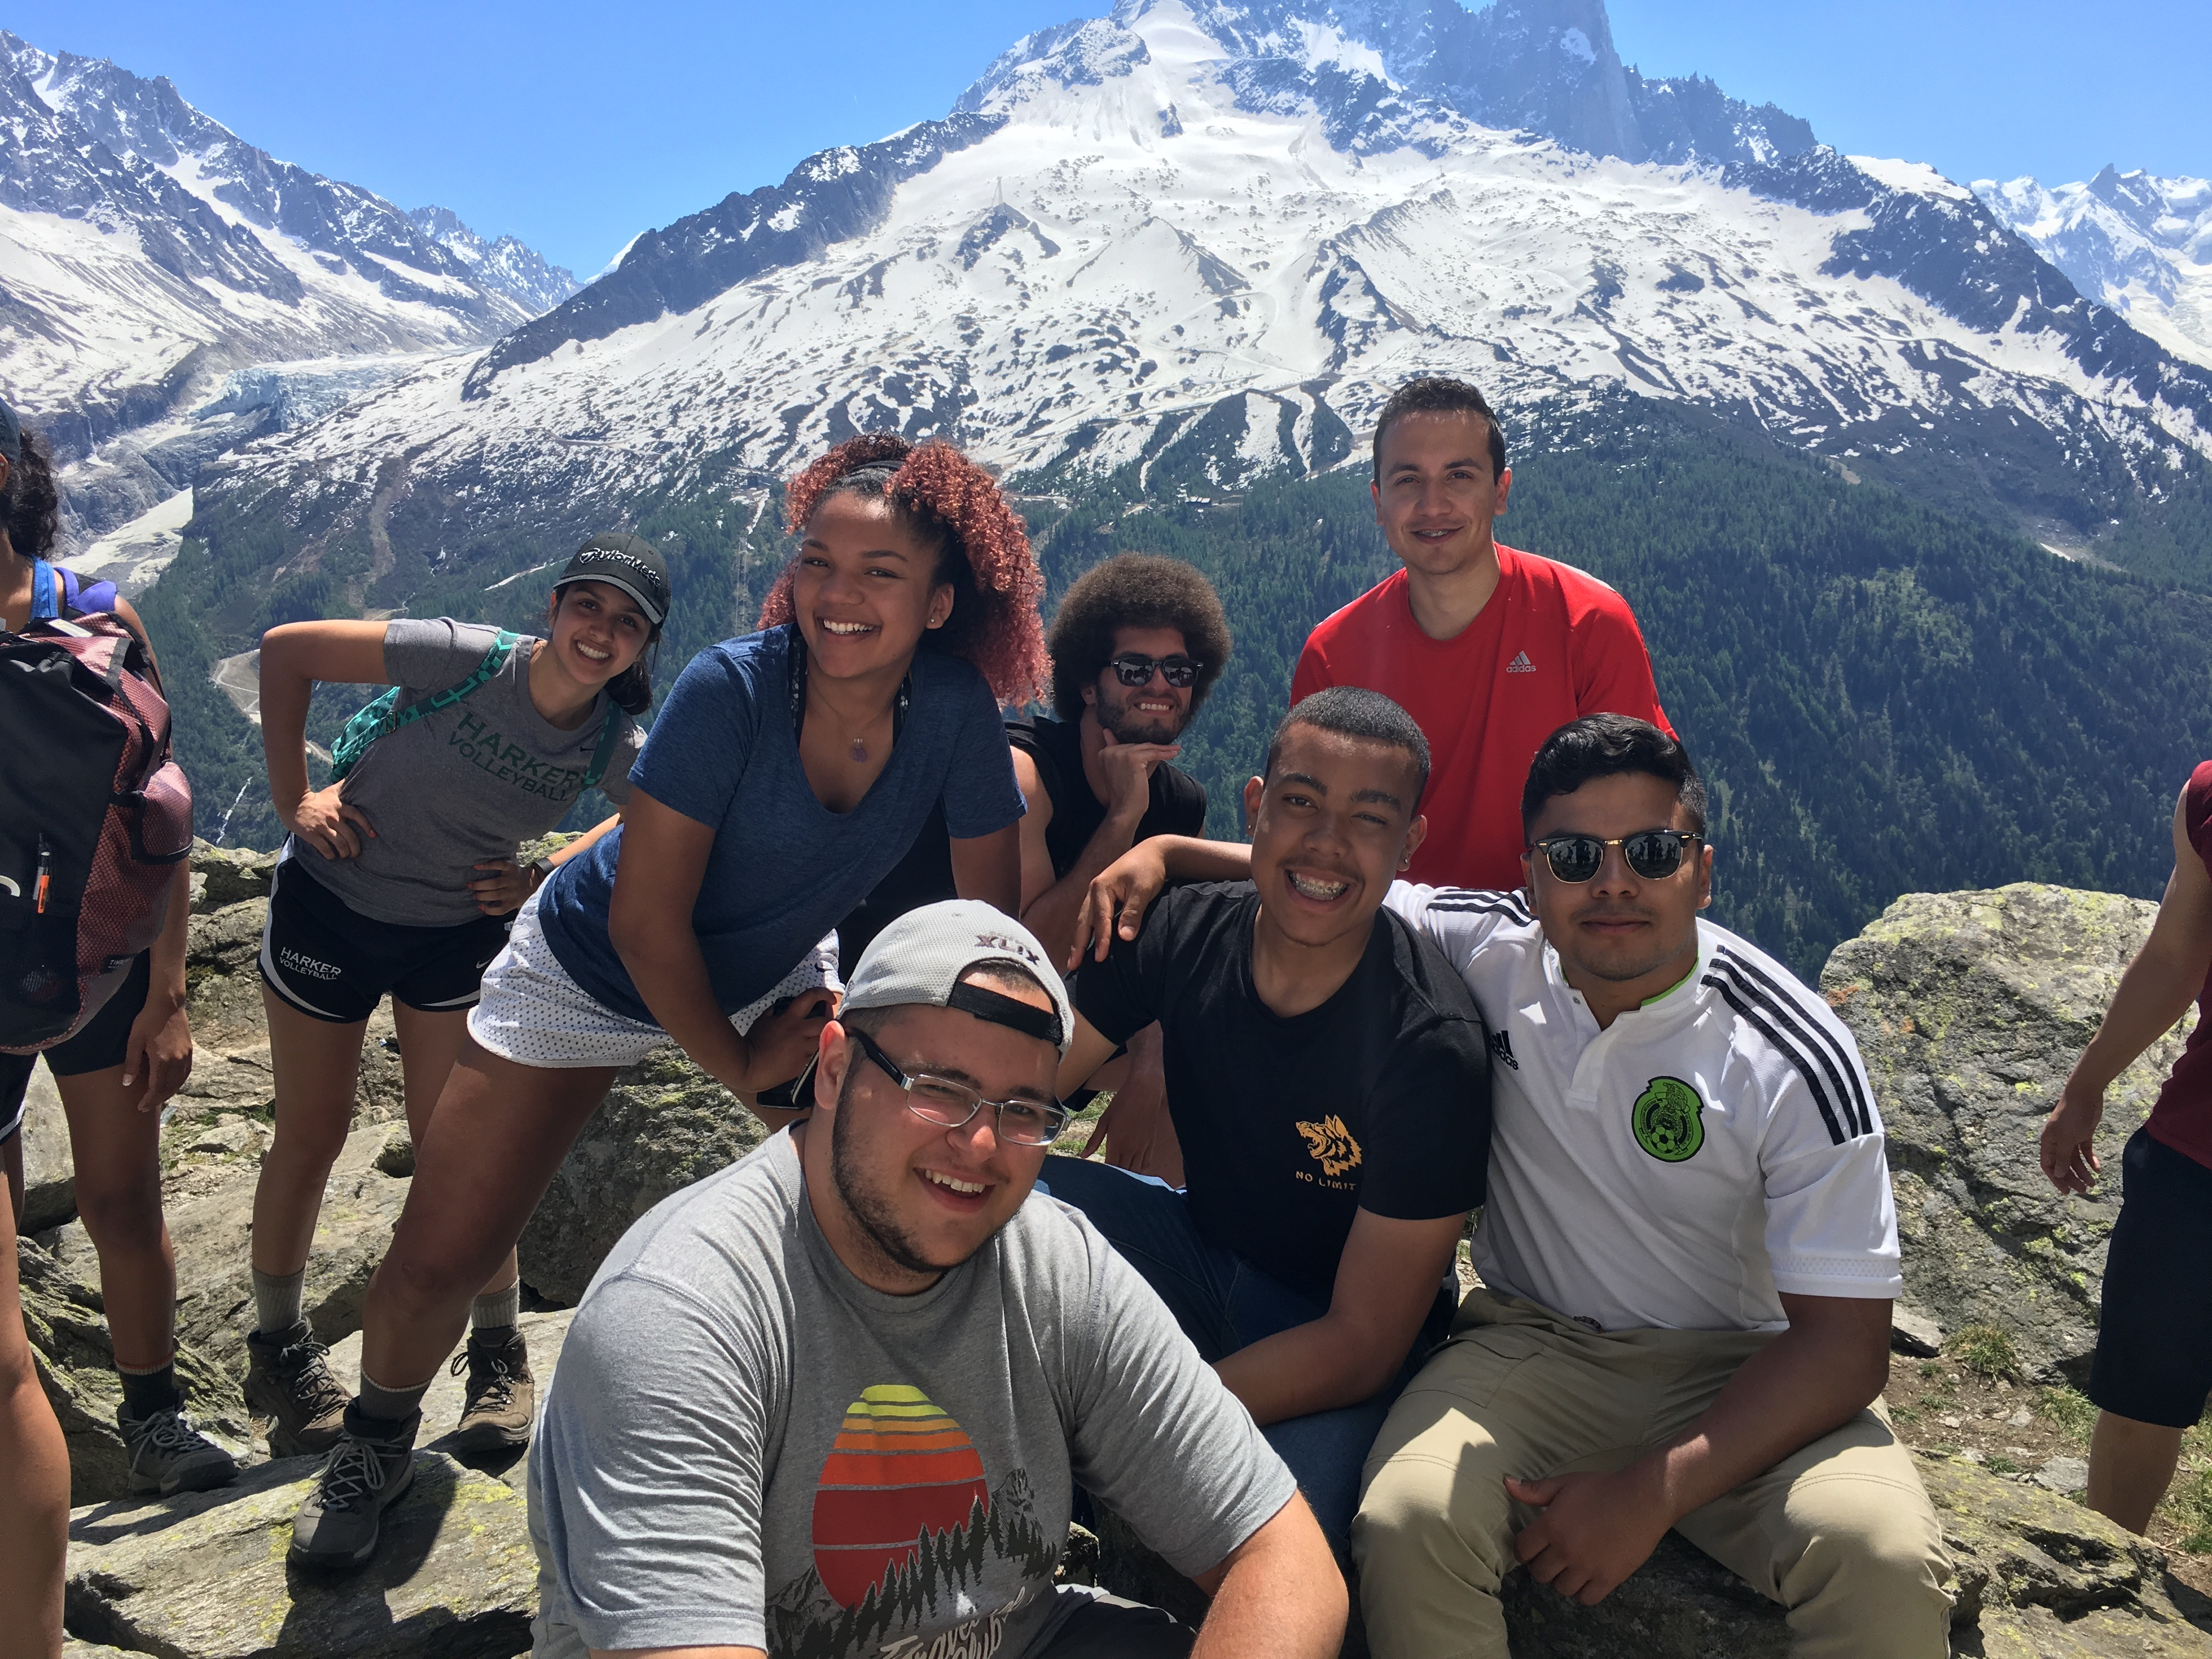 Against the backdrop of a snow-capped mountain, students face the camera and smile